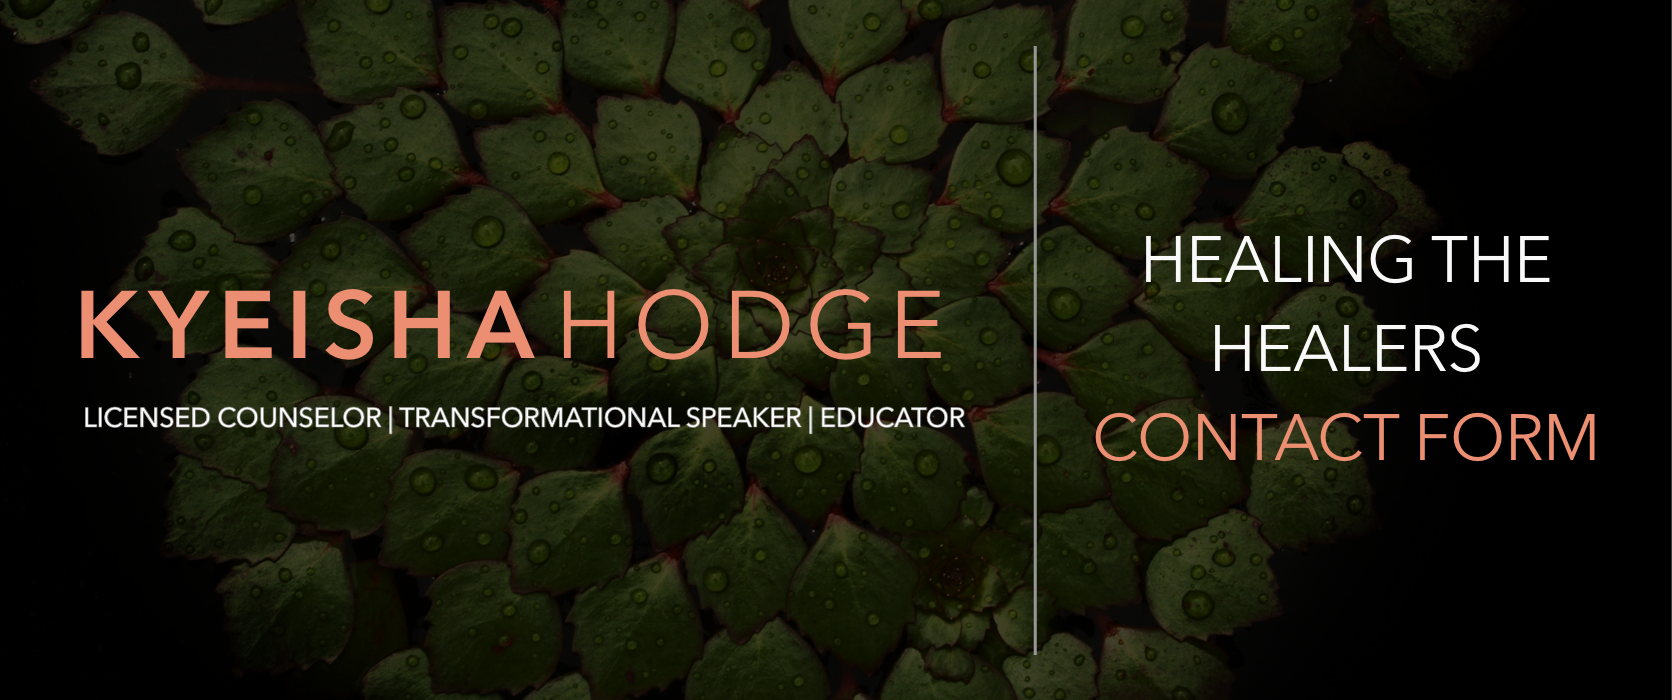 Click here to book me as a speaker.